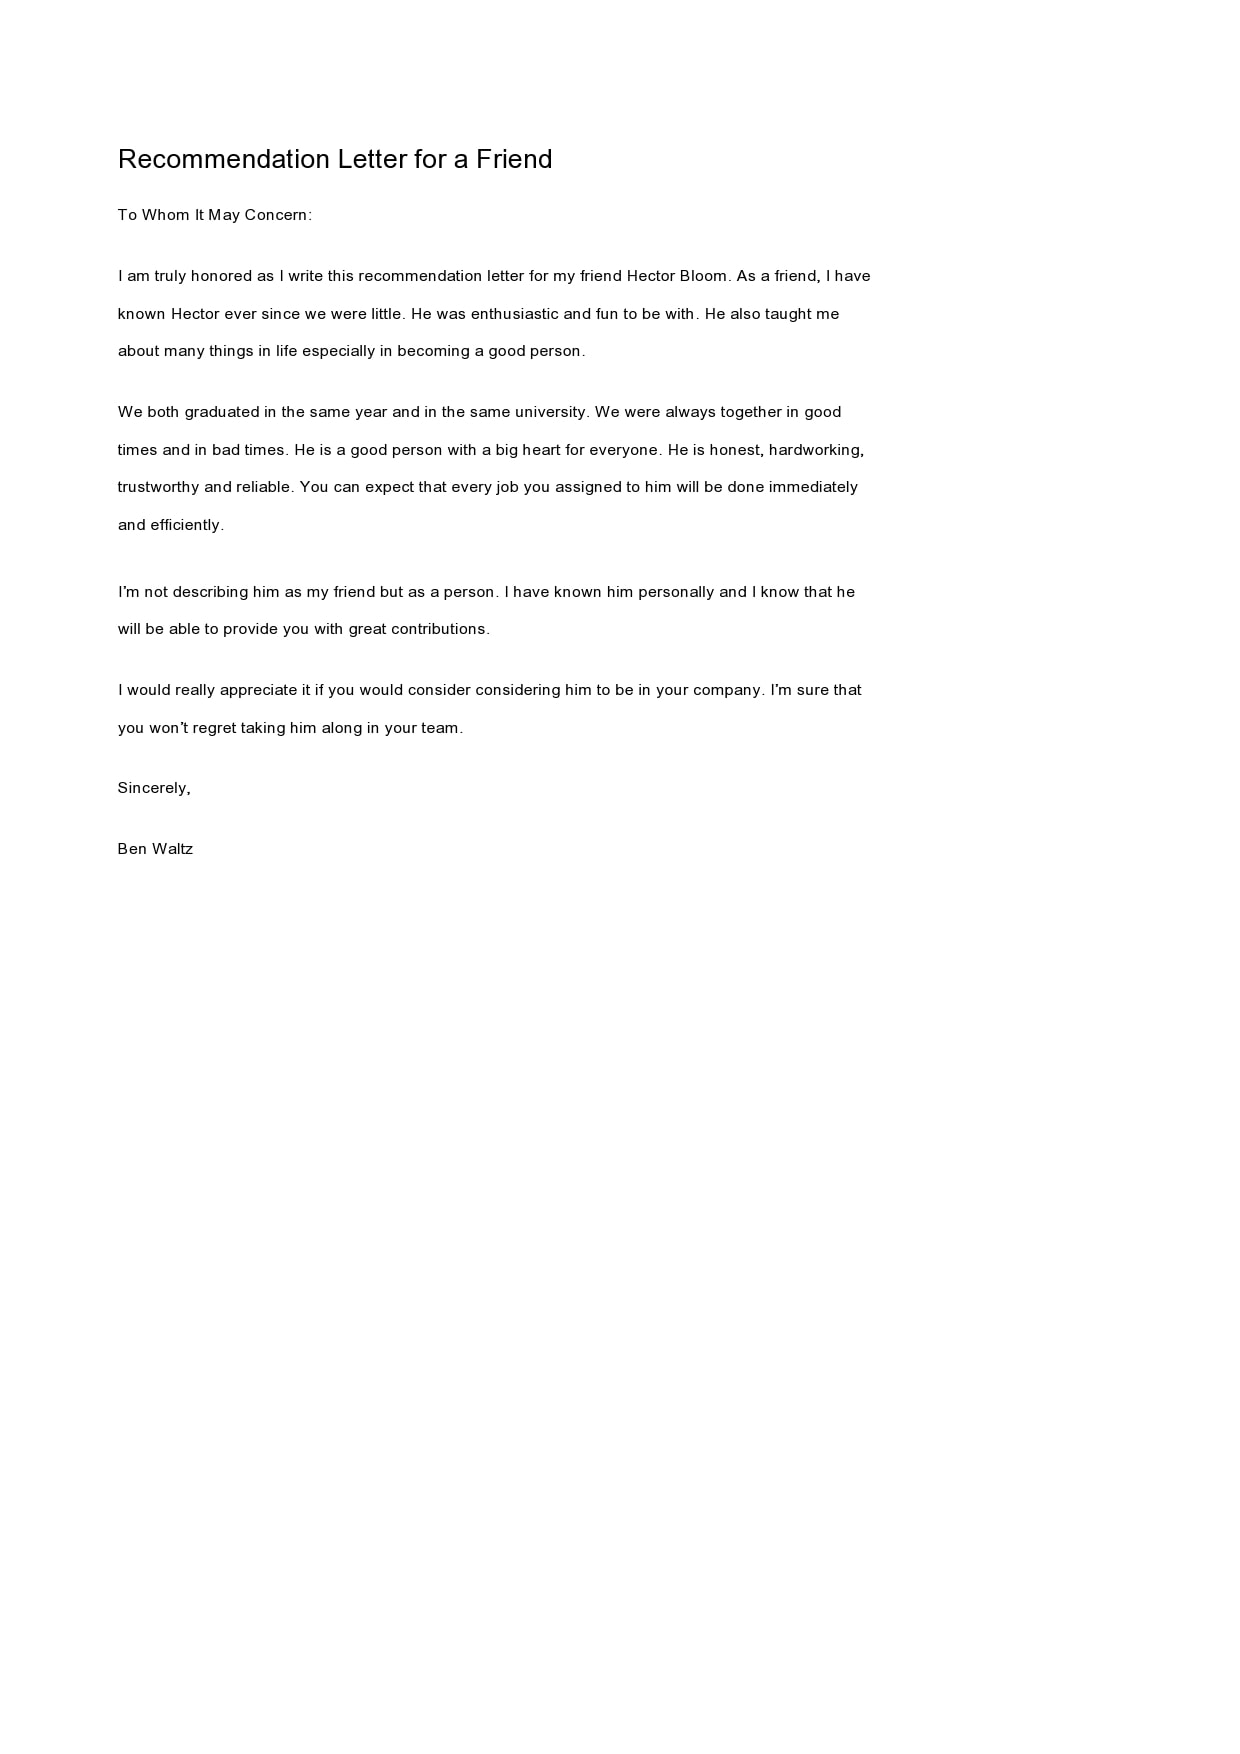 Recommendation Letter For A Friend from templatearchive.com